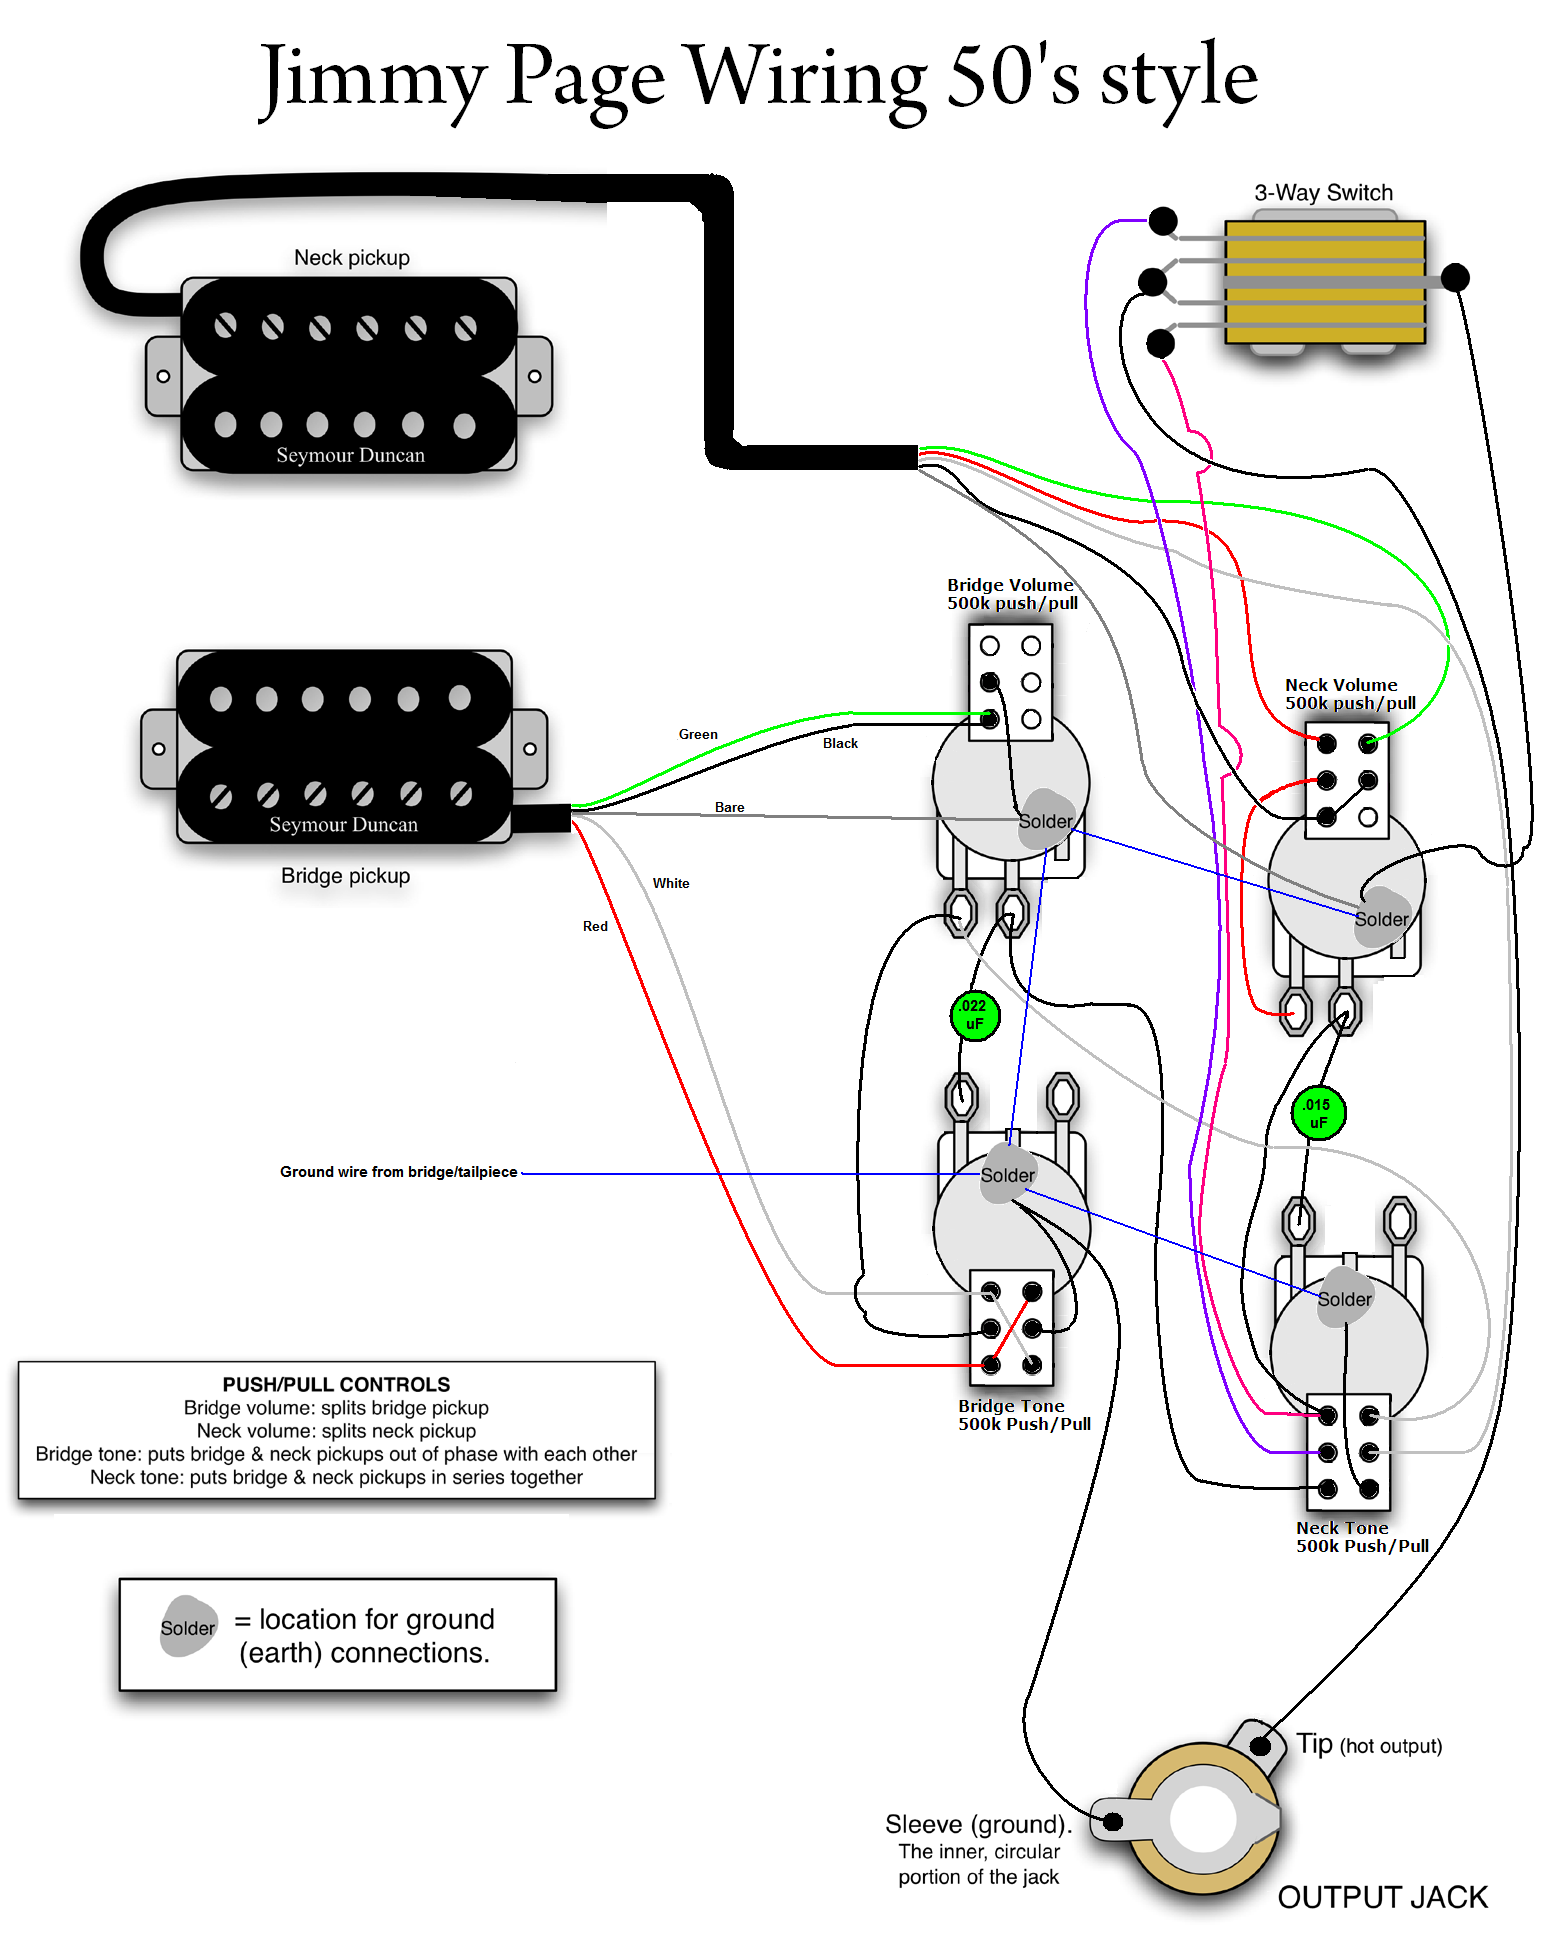 best jimmy page wiring harness wiring diagram work gibson jimmy page wiring diagram page wiring diagram #6